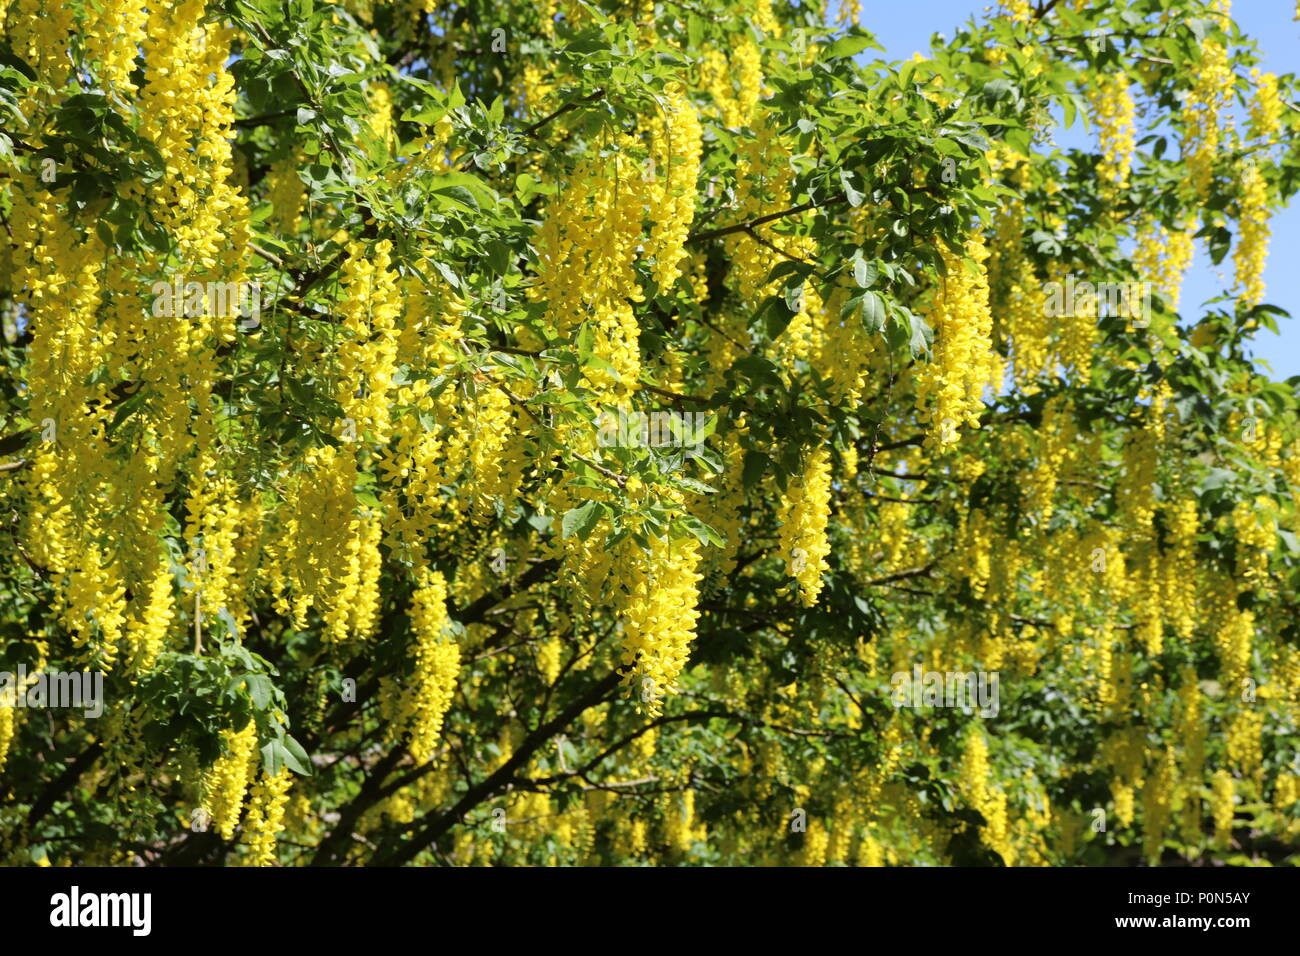 Cluster Of Yellow Hanging Flowers Stock Photos Cluster Of Yellow